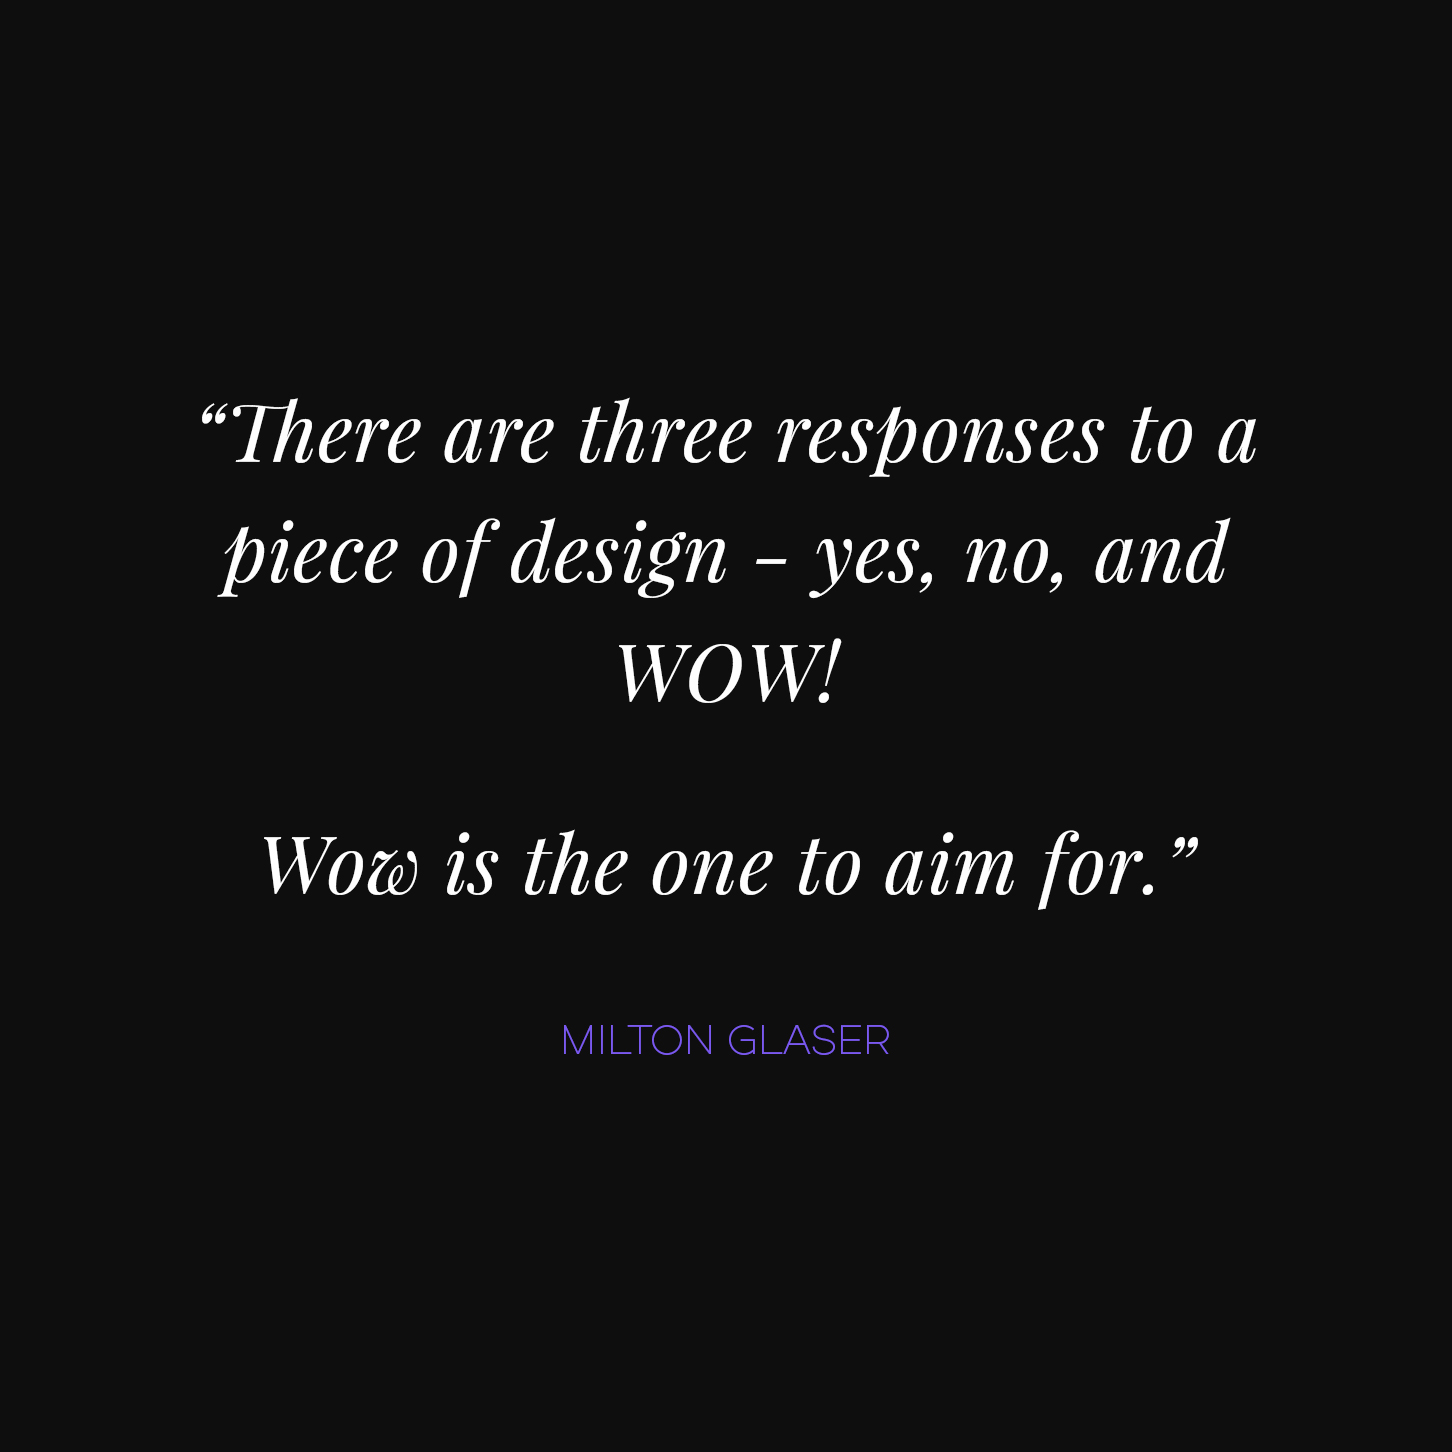 """There are three responses to a piece of design - yes, no, and WOW! WOW is the one to aim for."" Milton Glaser"